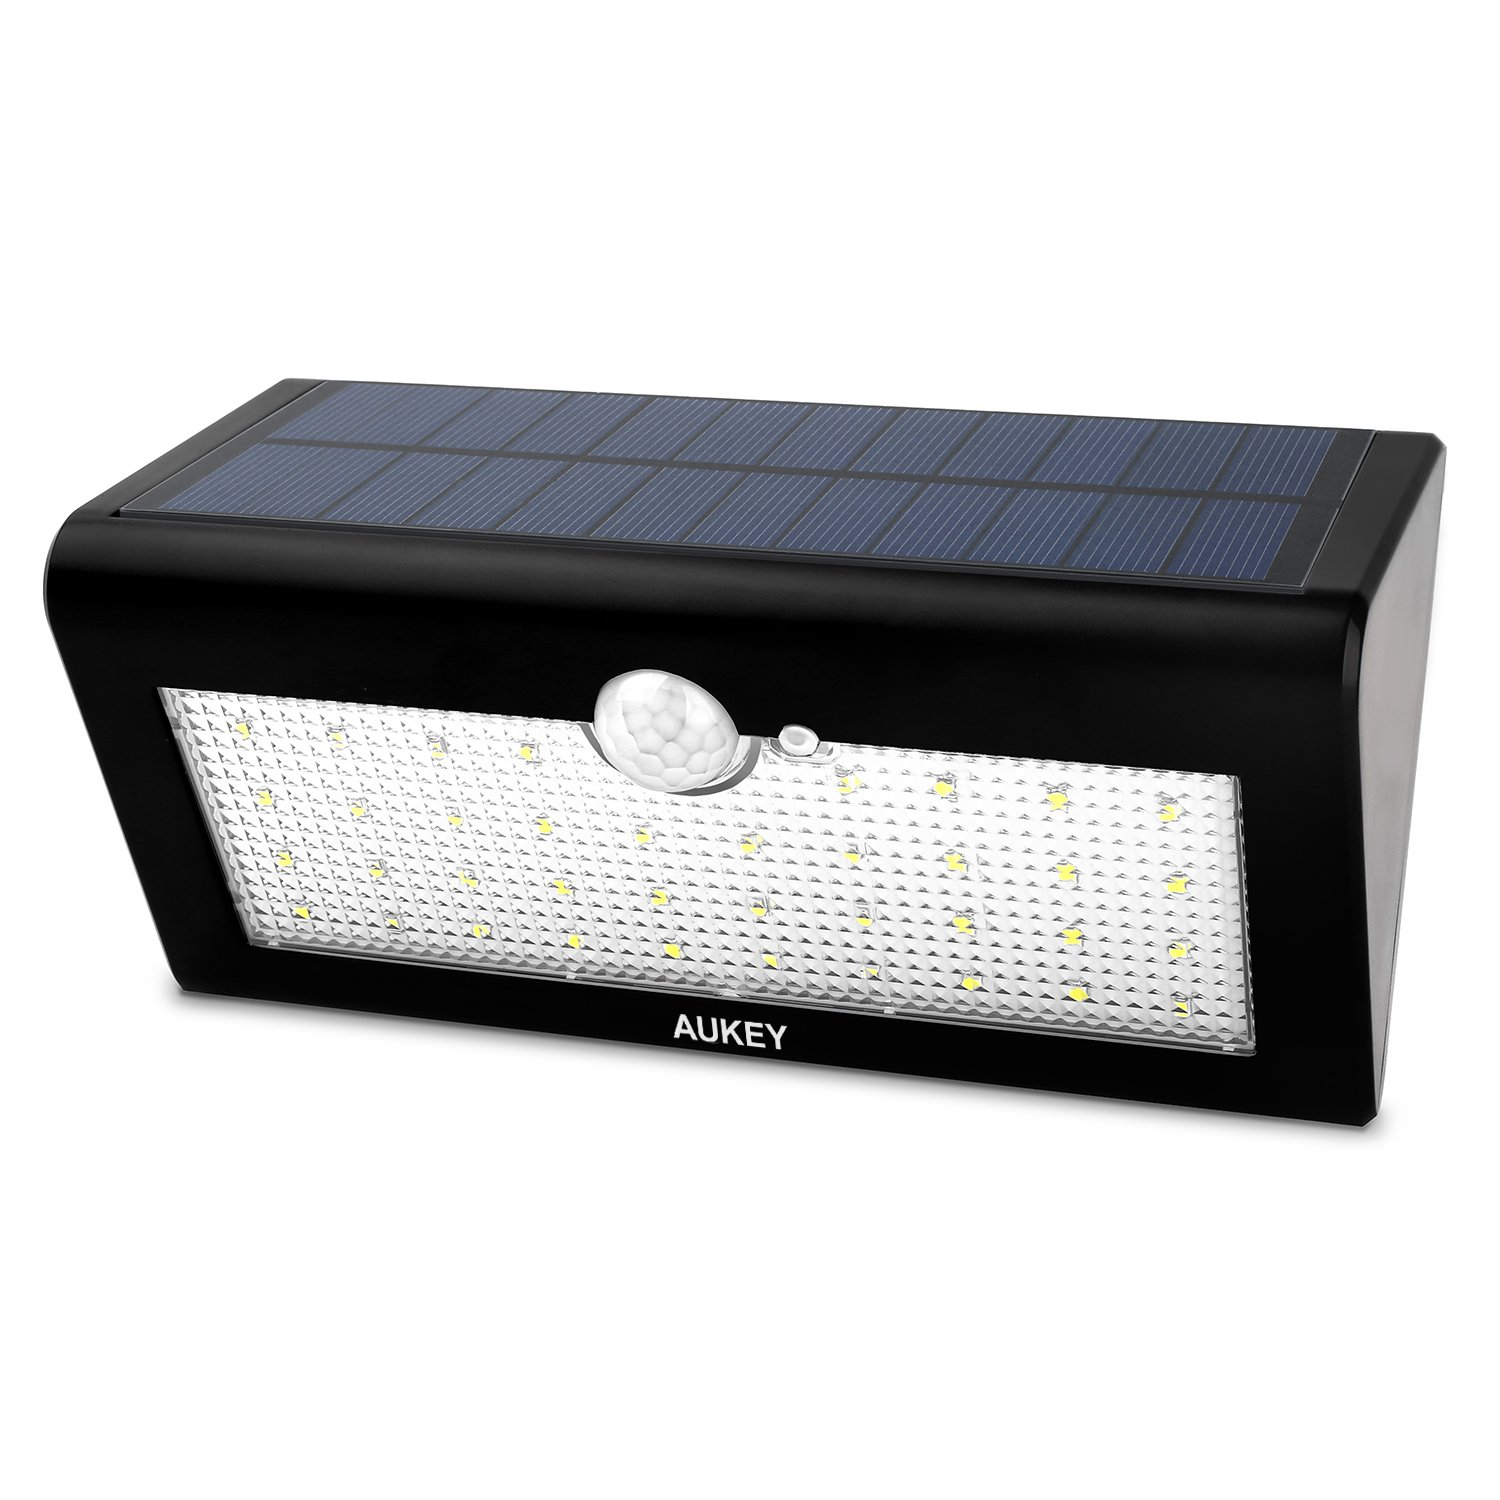 aukey led solar wandleuchte solarlampe mit bewegungsmelder. Black Bedroom Furniture Sets. Home Design Ideas